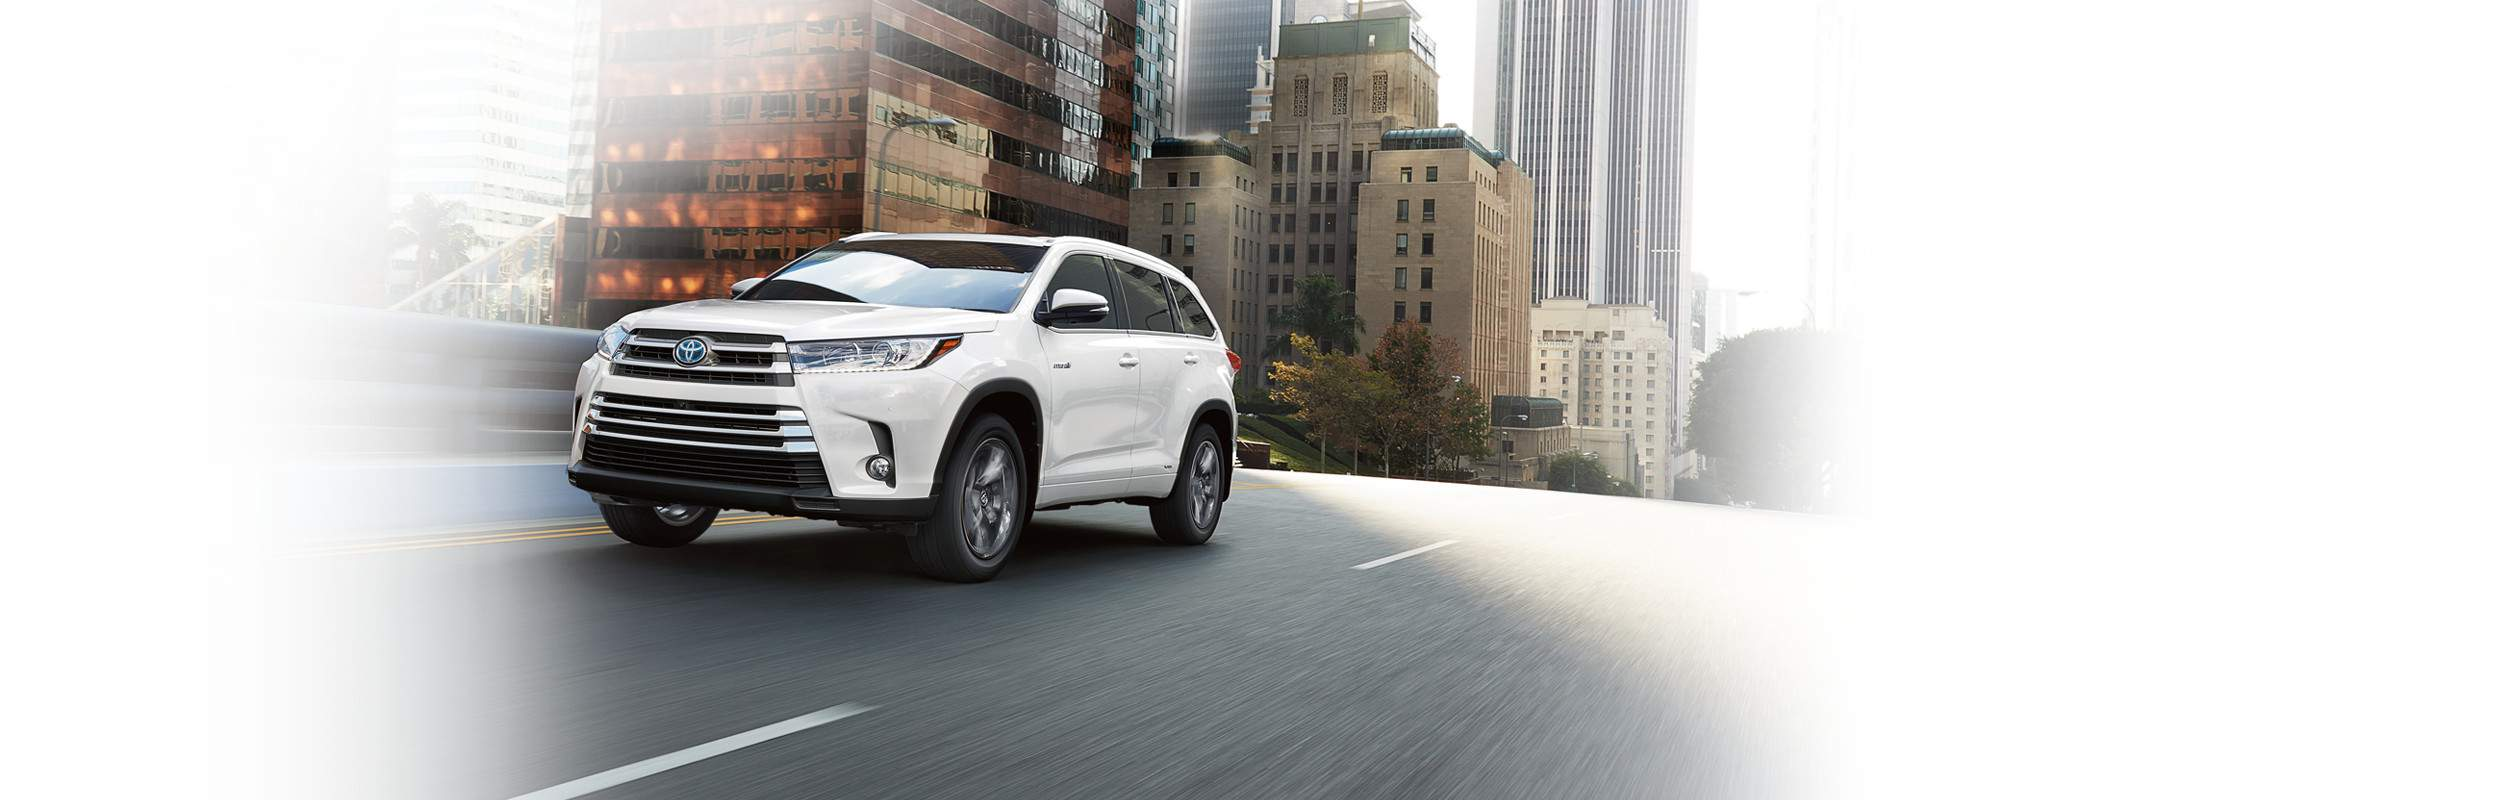 hybrids l pickup and suvs dropdown cars canada toyota en trucks highlander crossovers home